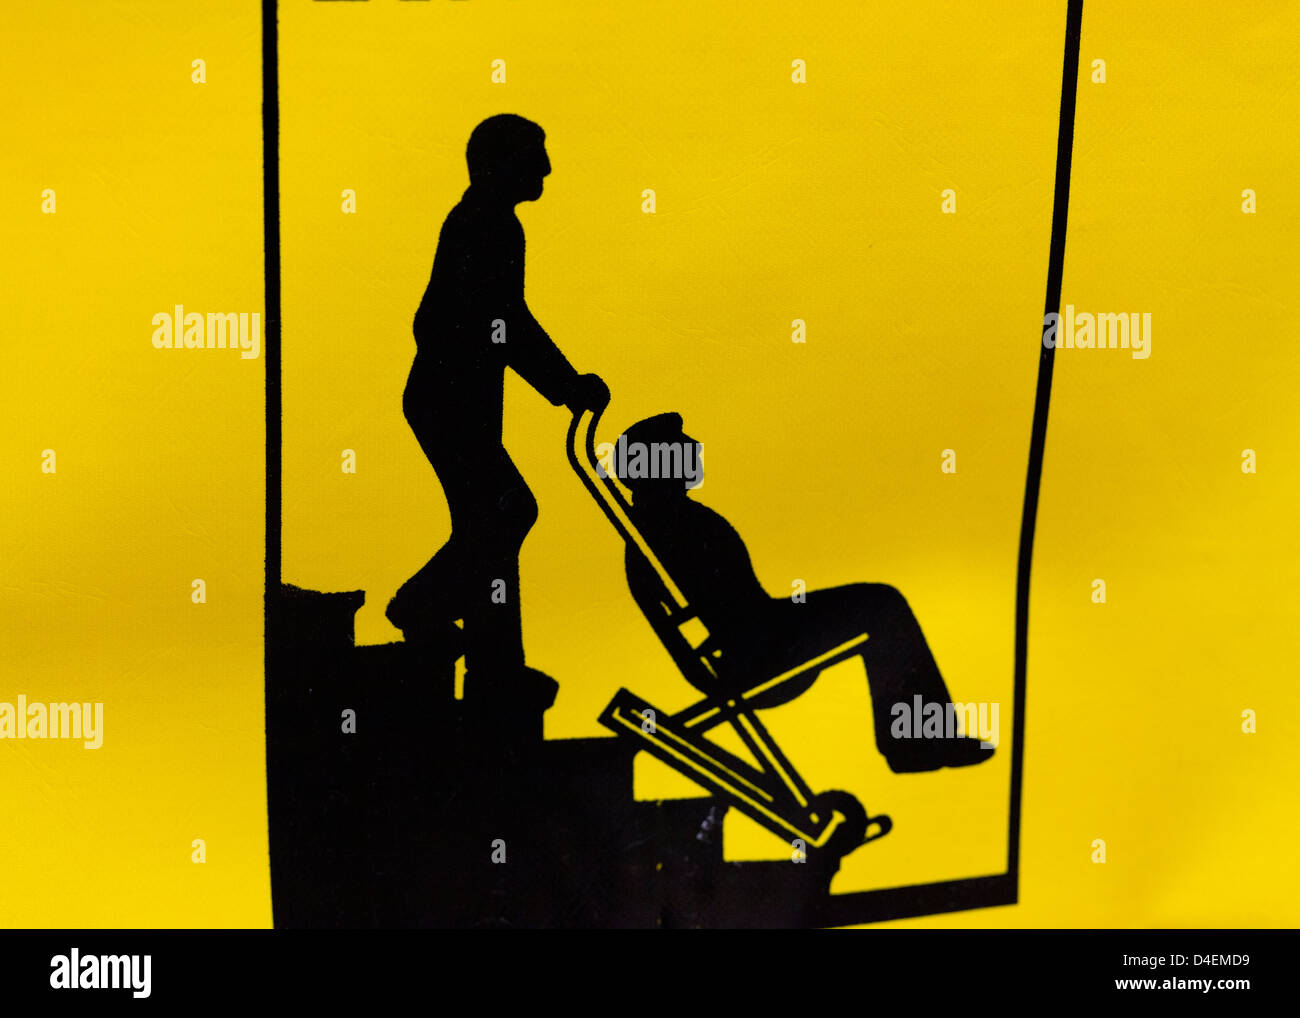 Rescue evacuation chair illustration - Stock Image